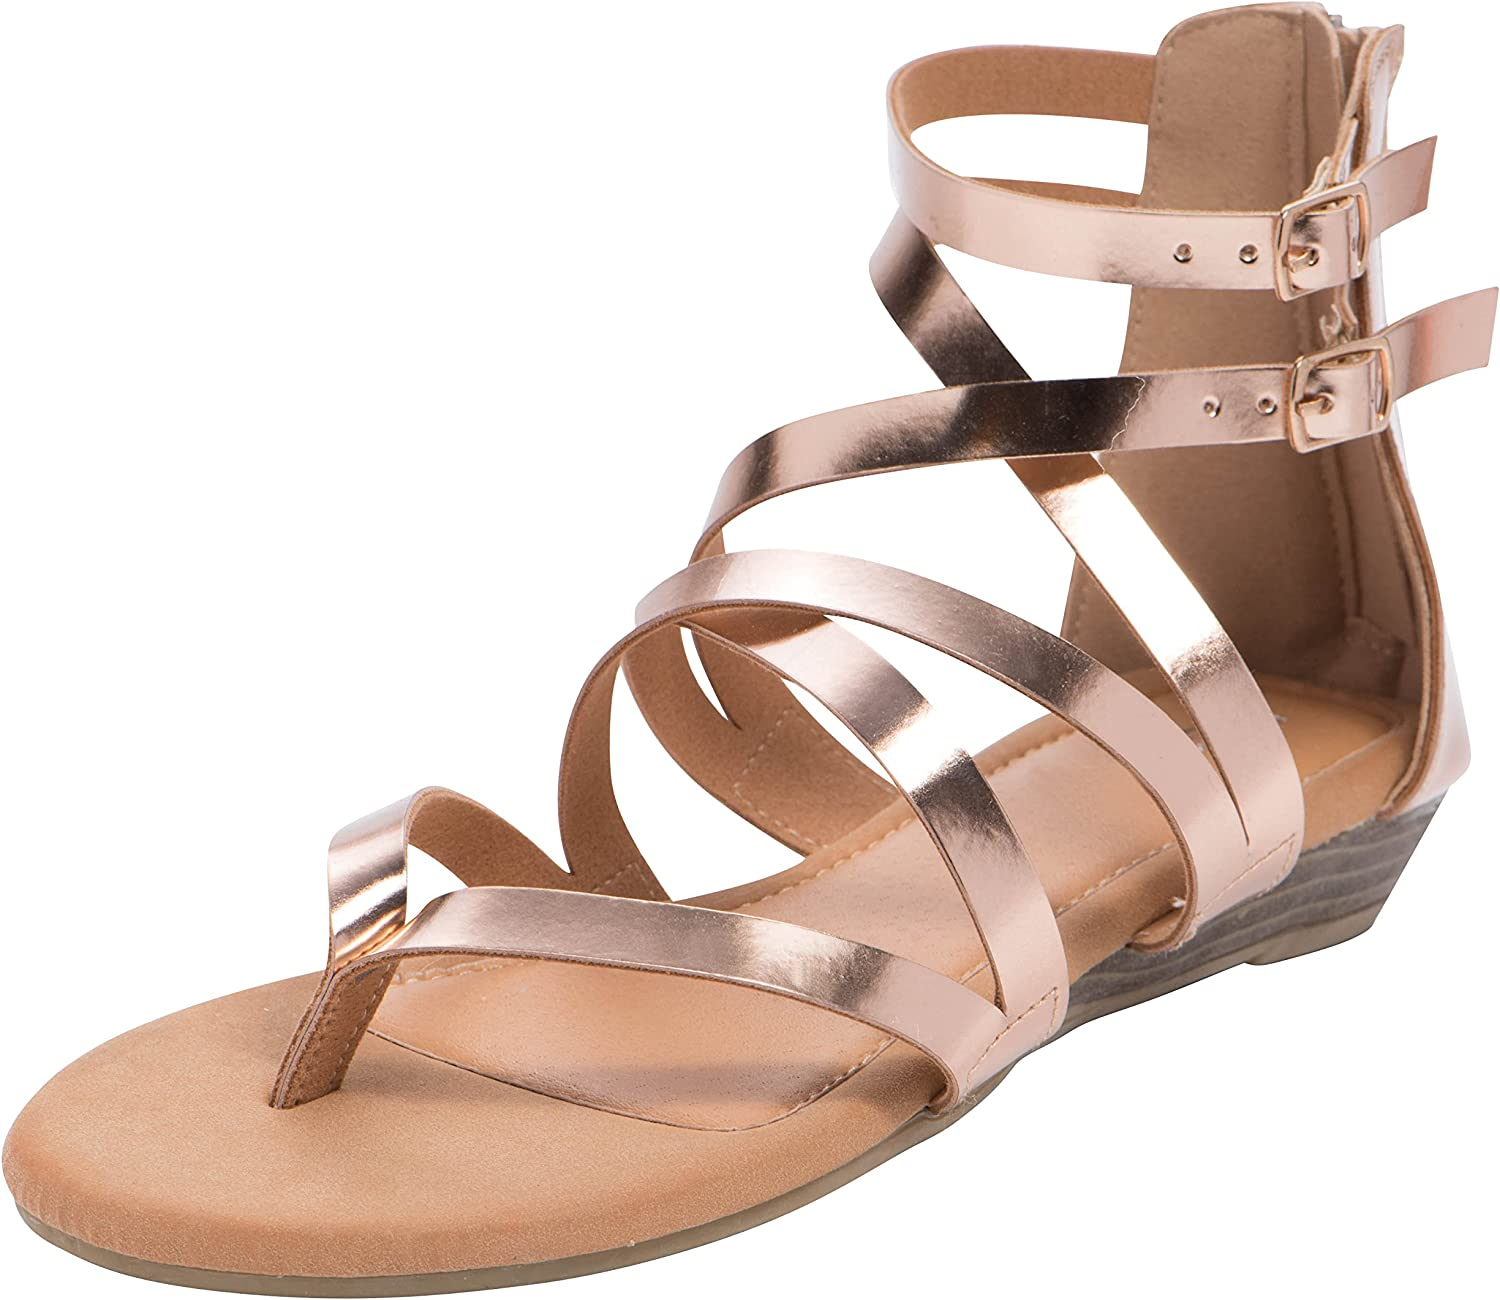 Cambridge Select Women's Open Toe Crisscross Buckled Ankle Strappy Low Wedge Sandal